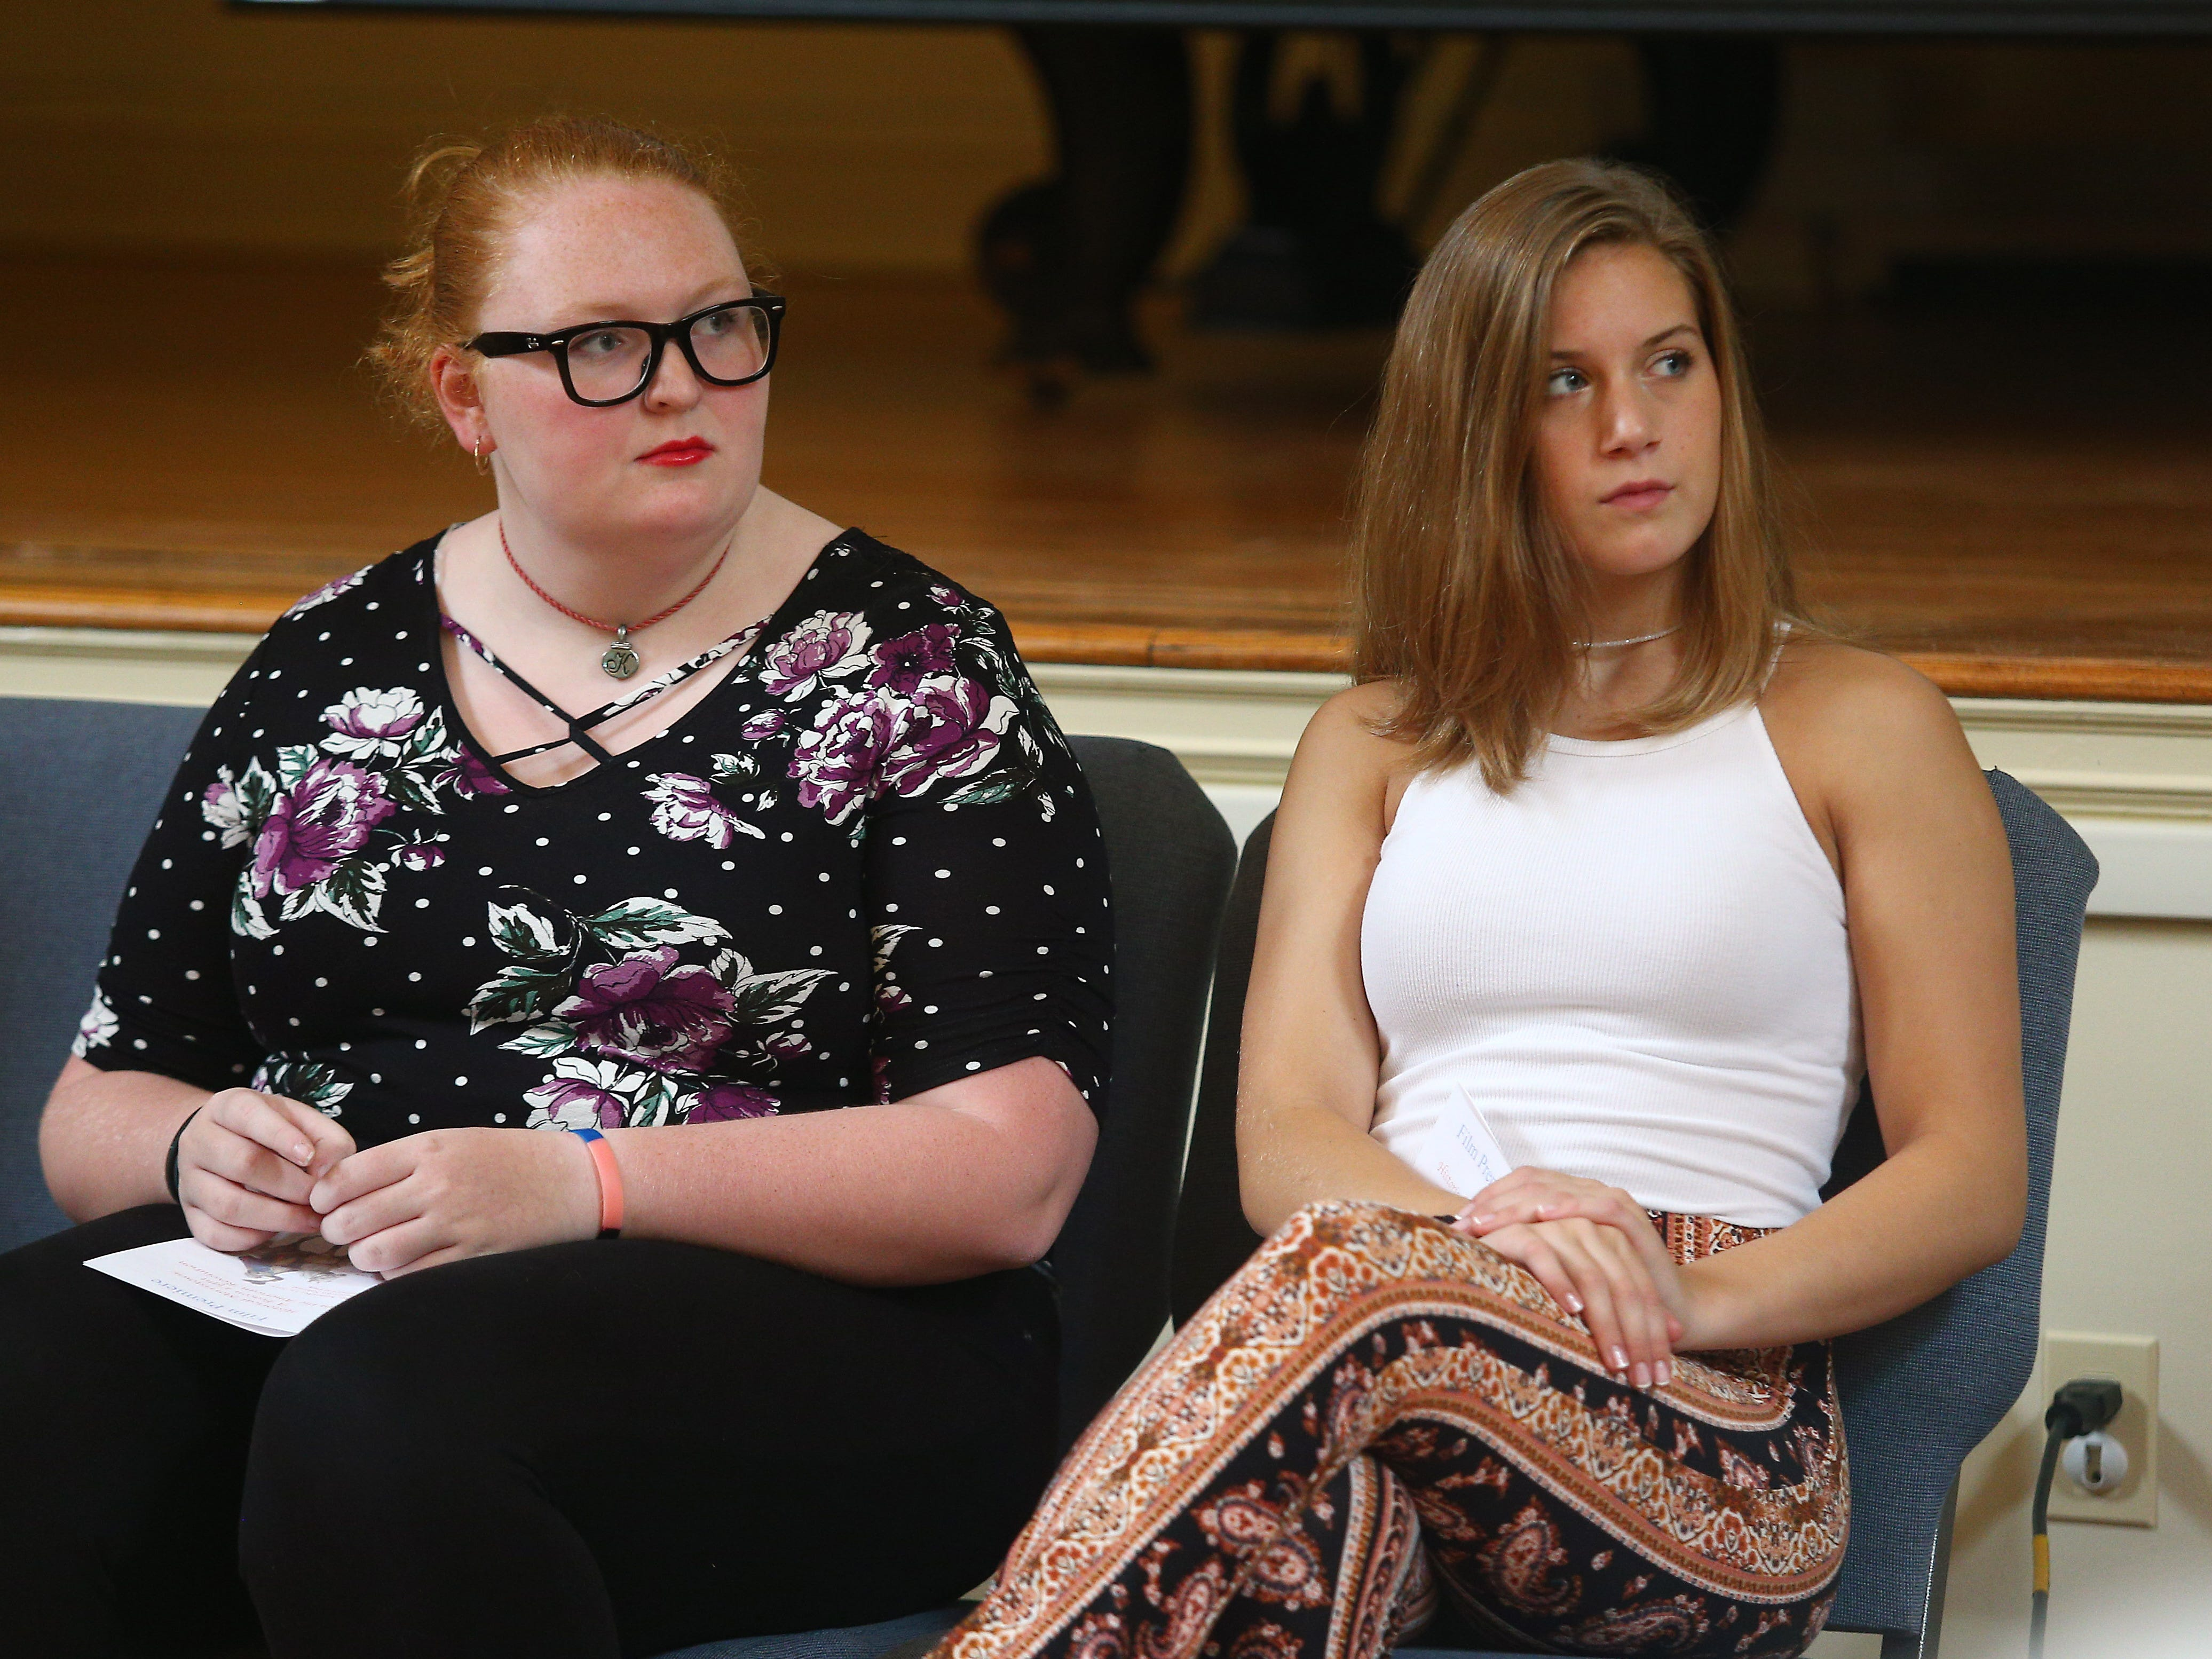 Morristown High School seniors Katie Rosa, l,  and Kylee Strasser produced a film about historic Morristown and accept the George Washington Prize for Creative Excellence at Washington's Headquarters. September 15, 2018, Morristown, NJ